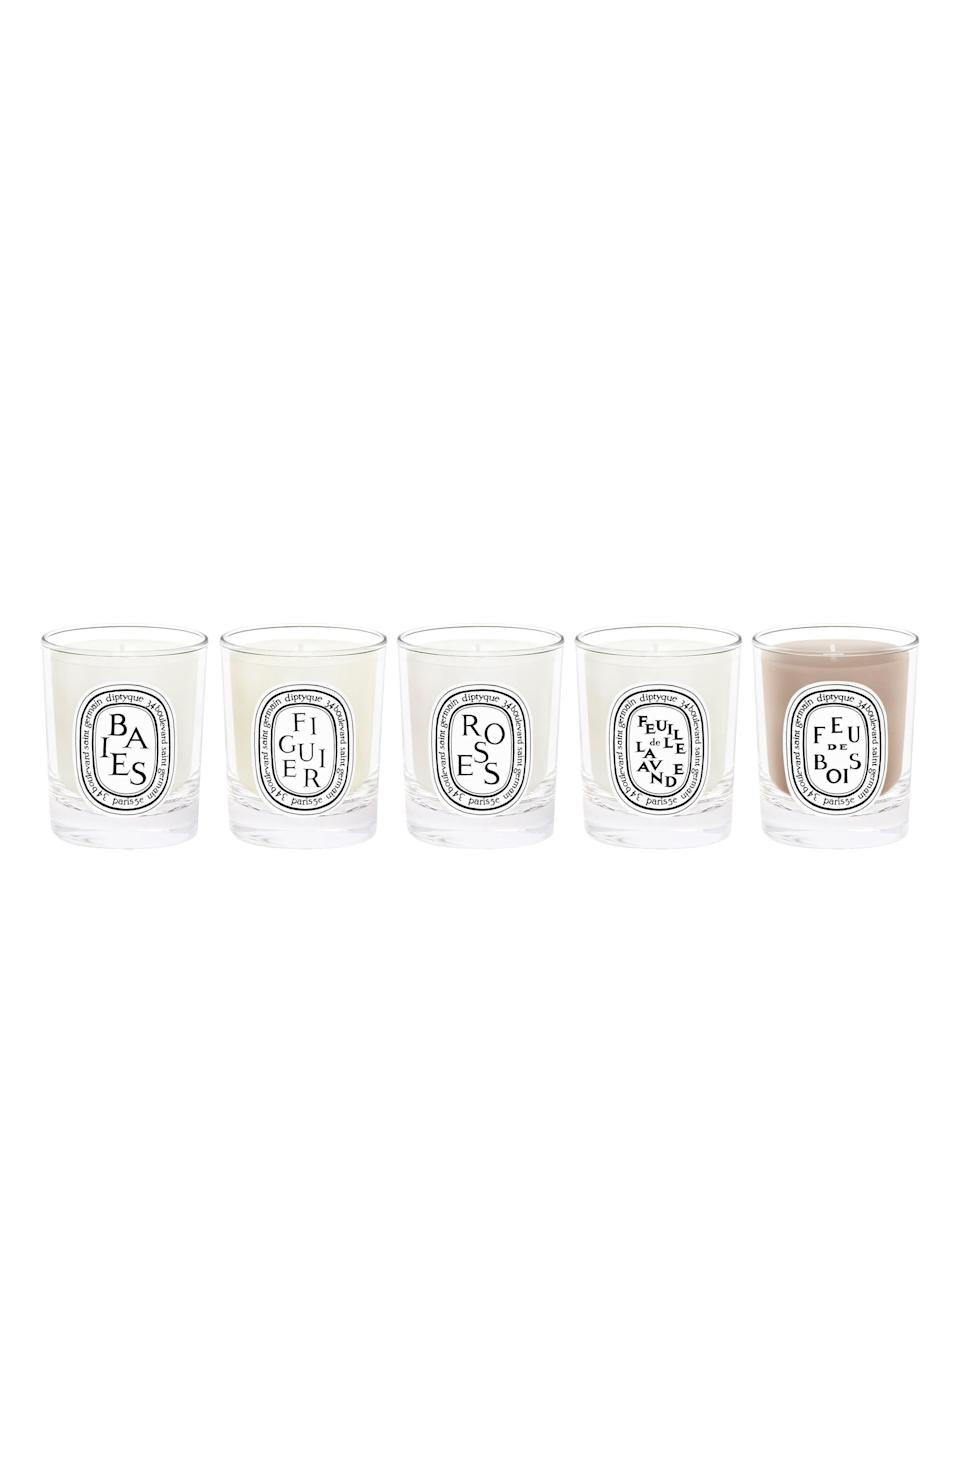 """<p><strong>DIPTYQUE</strong></p><p>nordstrom.com</p><p><a href=""""https://go.redirectingat.com?id=74968X1596630&url=https%3A%2F%2Fwww.nordstrom.com%2Fs%2Fdiptyque-travel-size-scented-candle-set-82-value%2F5894239&sref=https%3A%2F%2Fwww.goodhousekeeping.com%2Flife%2Fmoney%2Fg36944754%2Fnordstrom-anniversary-sale-2021%2F"""" rel=""""nofollow noopener"""" target=""""_blank"""" data-ylk=""""slk:Shop Now"""" class=""""link rapid-noclick-resp"""">Shop Now</a></p><p><strong>$60.00</strong> </p><p>This limited-edition set features five travel-size candles of the brand's most iconic scents. Valuing in at $82, this collection is a nice addition to any home fragrance library.</p>"""